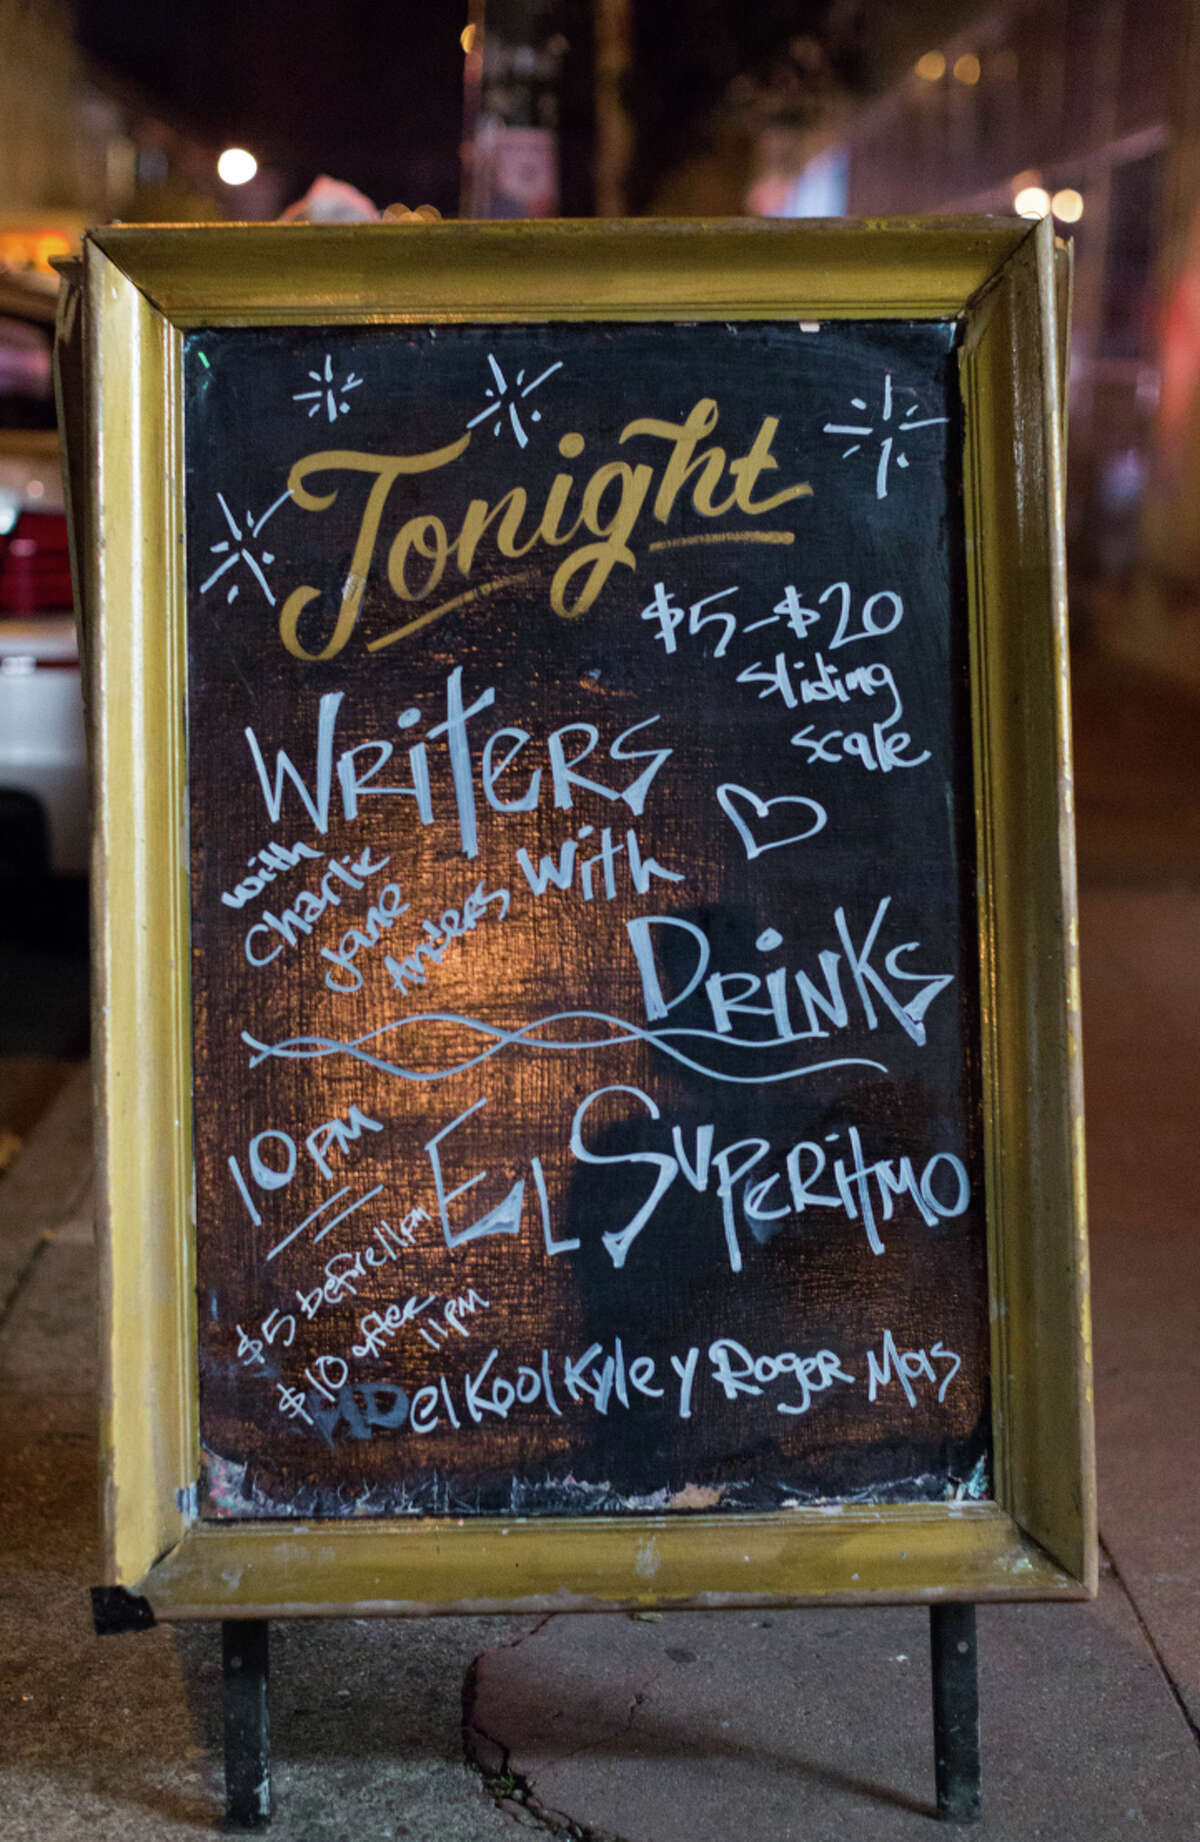 Guests pay to enter the monthly Writers With Drinks event based on a sliding scale.